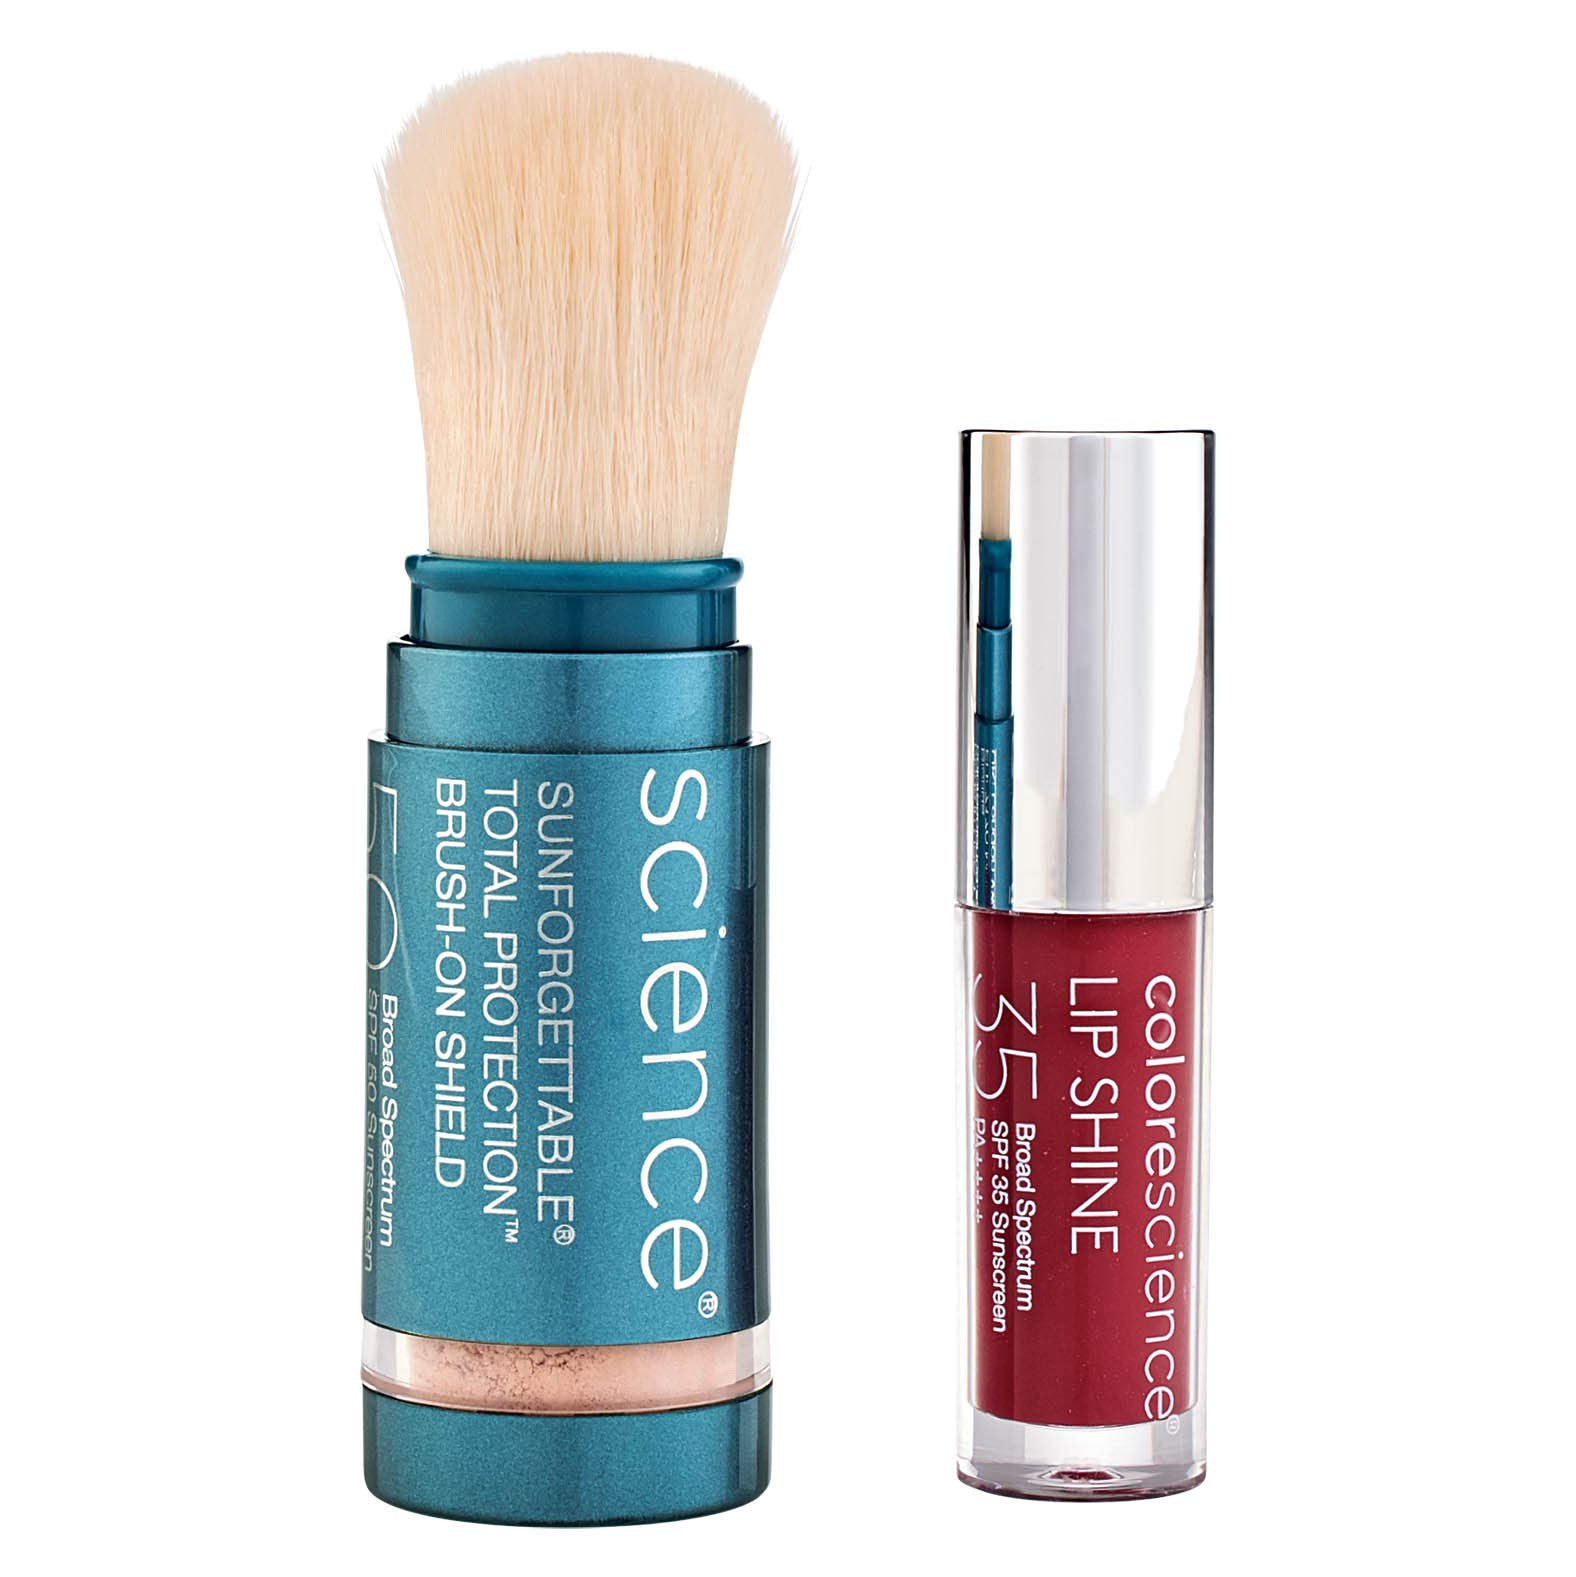 Colorescience Sun Protection Duo, Mineral Powder Sunscreen SPF 50, Lip Shine SPF 35, 1 Set